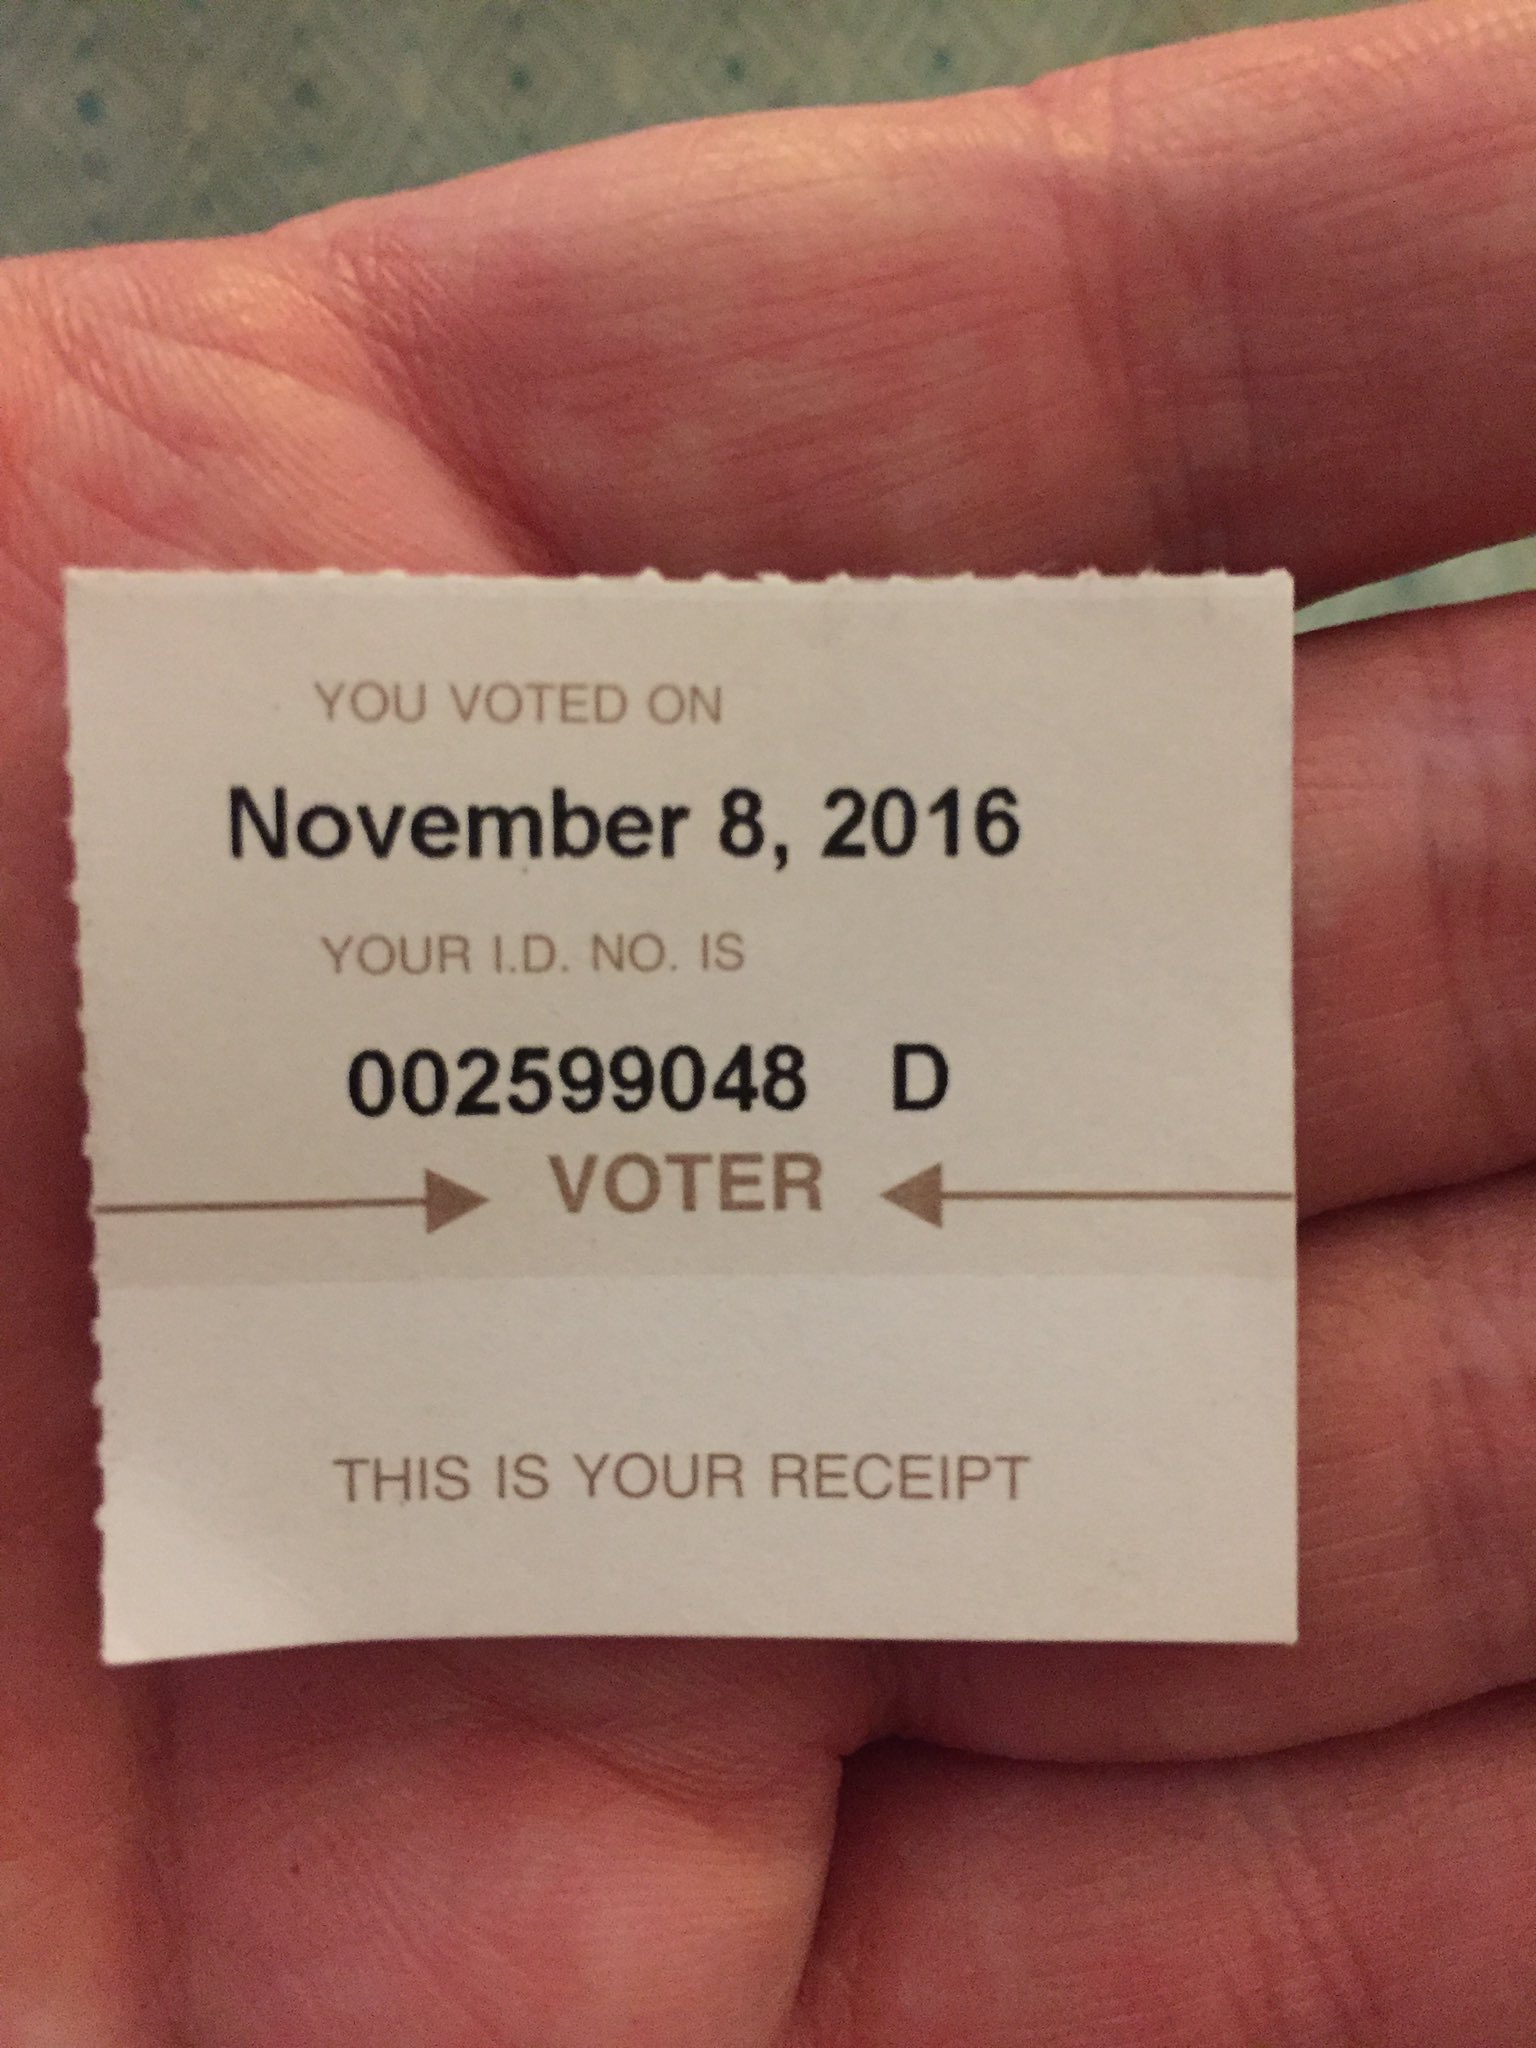 After an exciting day at #TRETC2016 I was able to fulfill my civic duty. https://t.co/r2ZbAyXW3Z